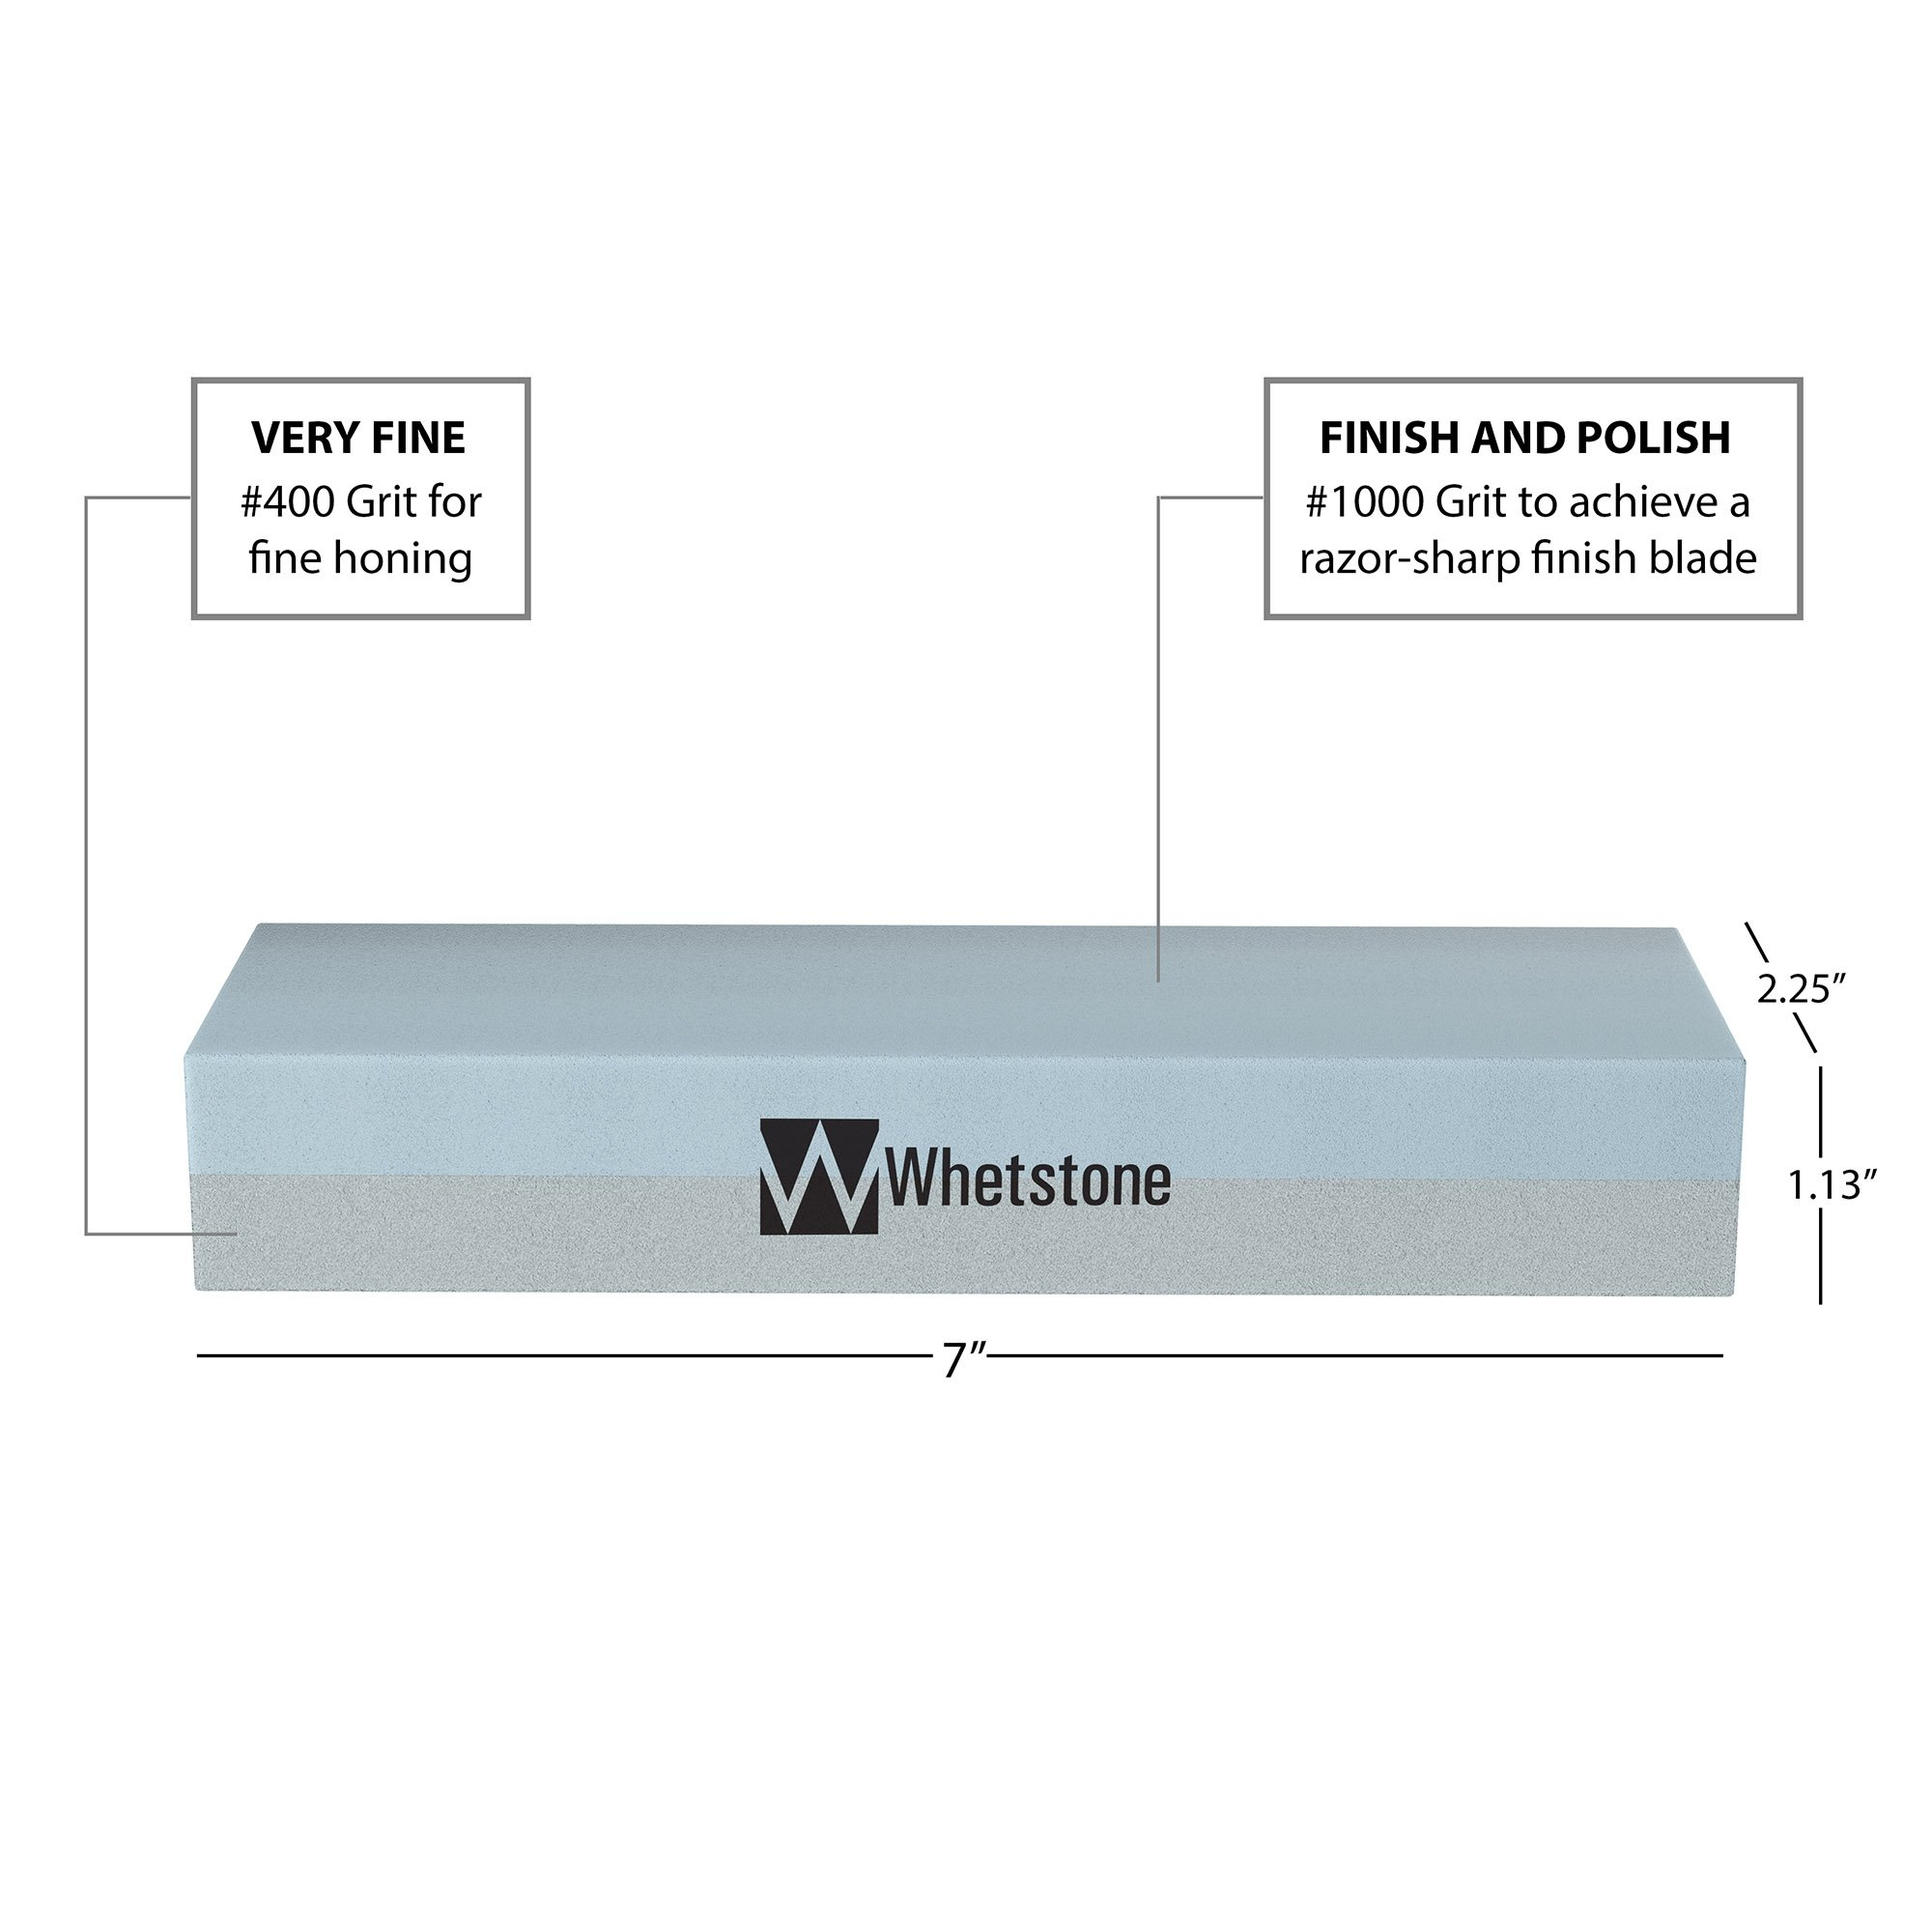 Whetstone Cutlery 20-10960 Knife Sharpening Stone-Dual Sided 400/1000 Grit Water Stone-Sharpener and Polishing Tool for Kitchen, Hunting and Pocket Knives or Blades by Whetstone by Whetstone Cutlery (Image #2)